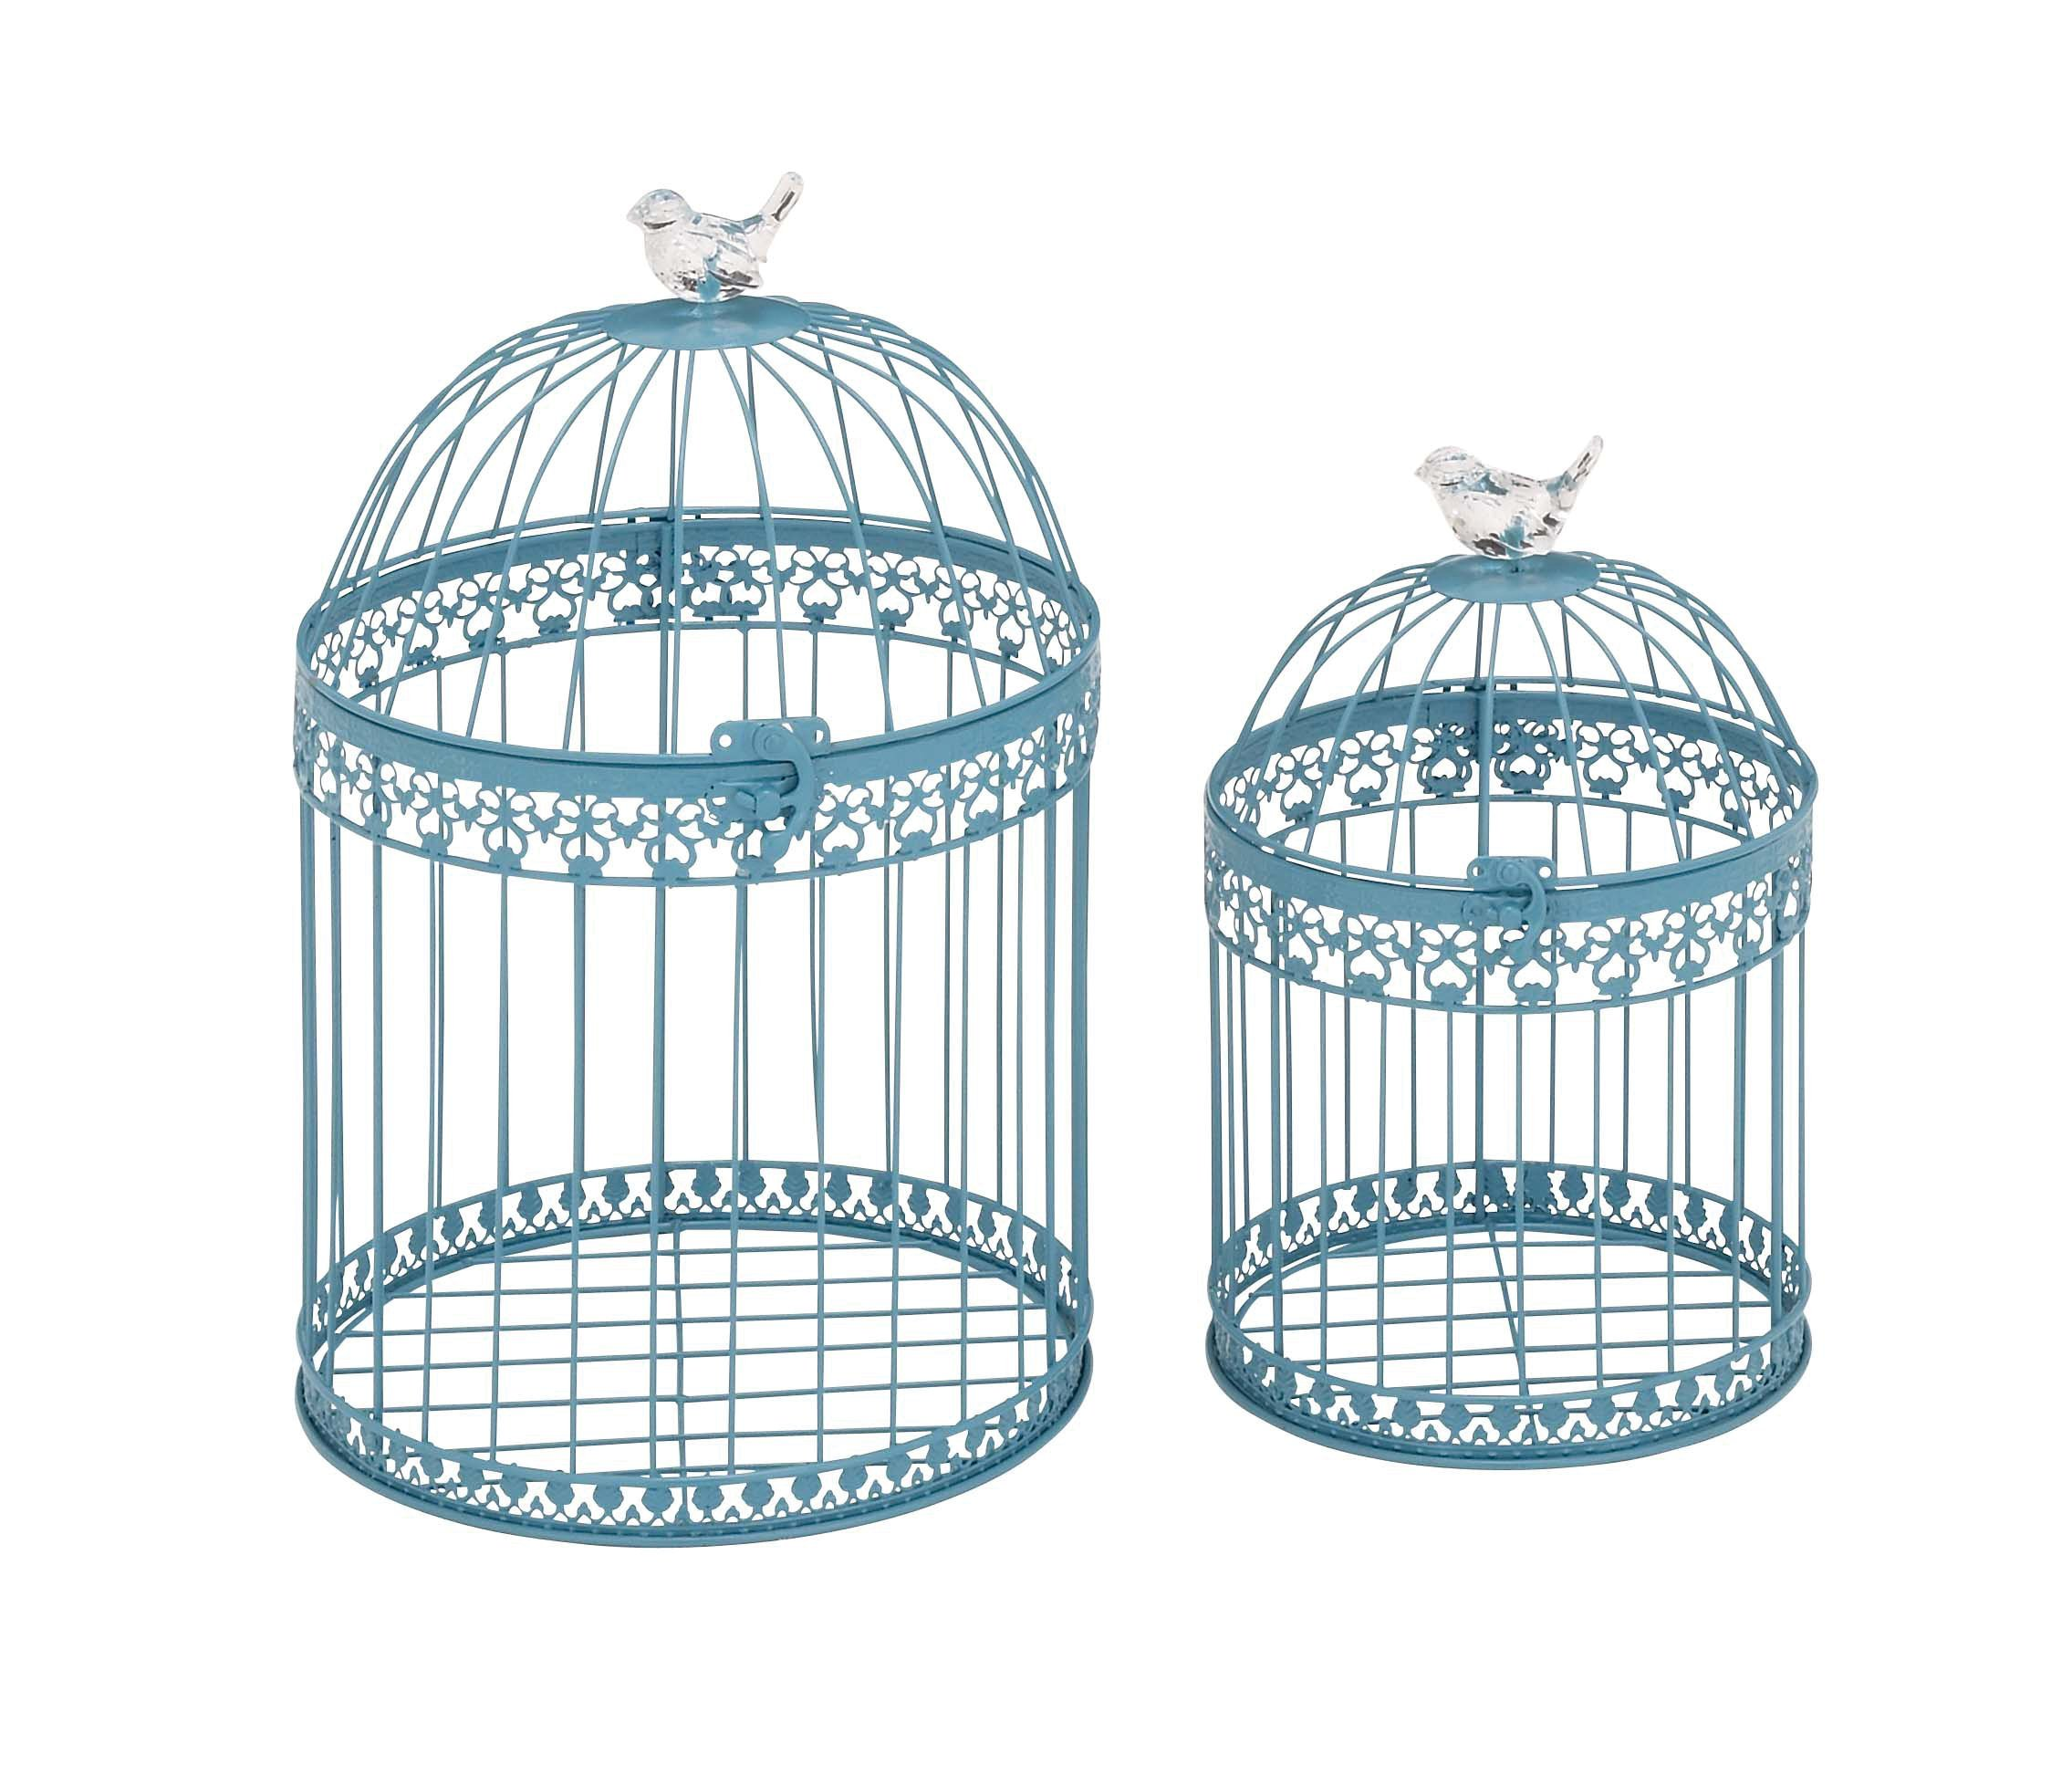 Benzara Attractive and Lovely Acrylic Bird Cages, Set of 2 by Benzara